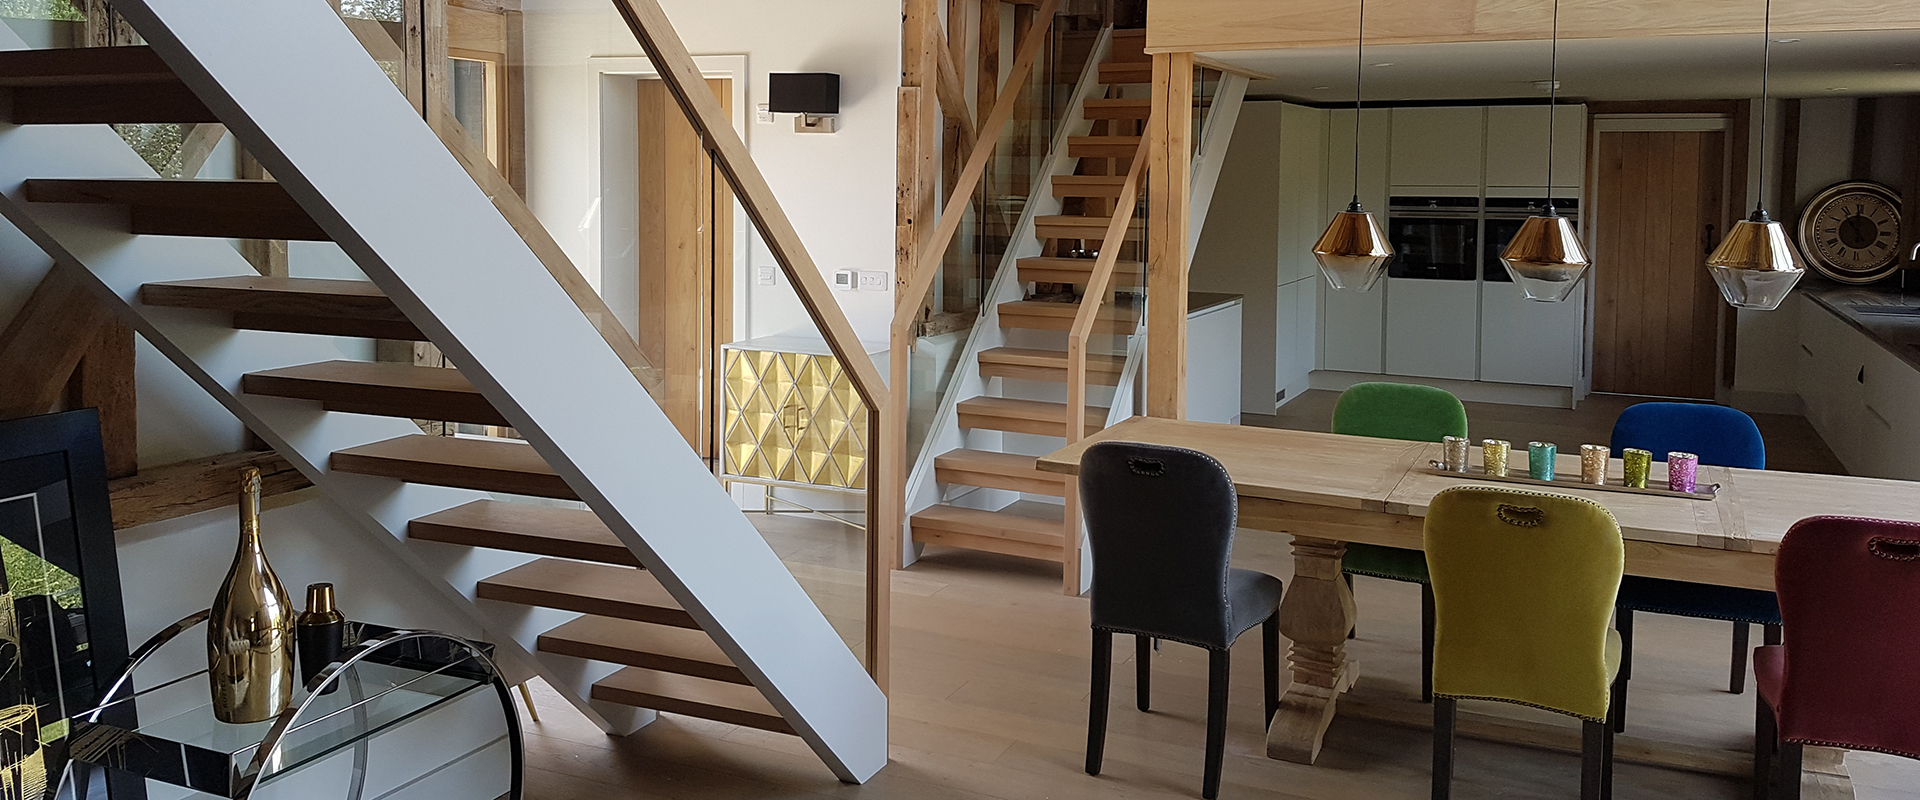 Bespoke Wooden Staircases in kent'